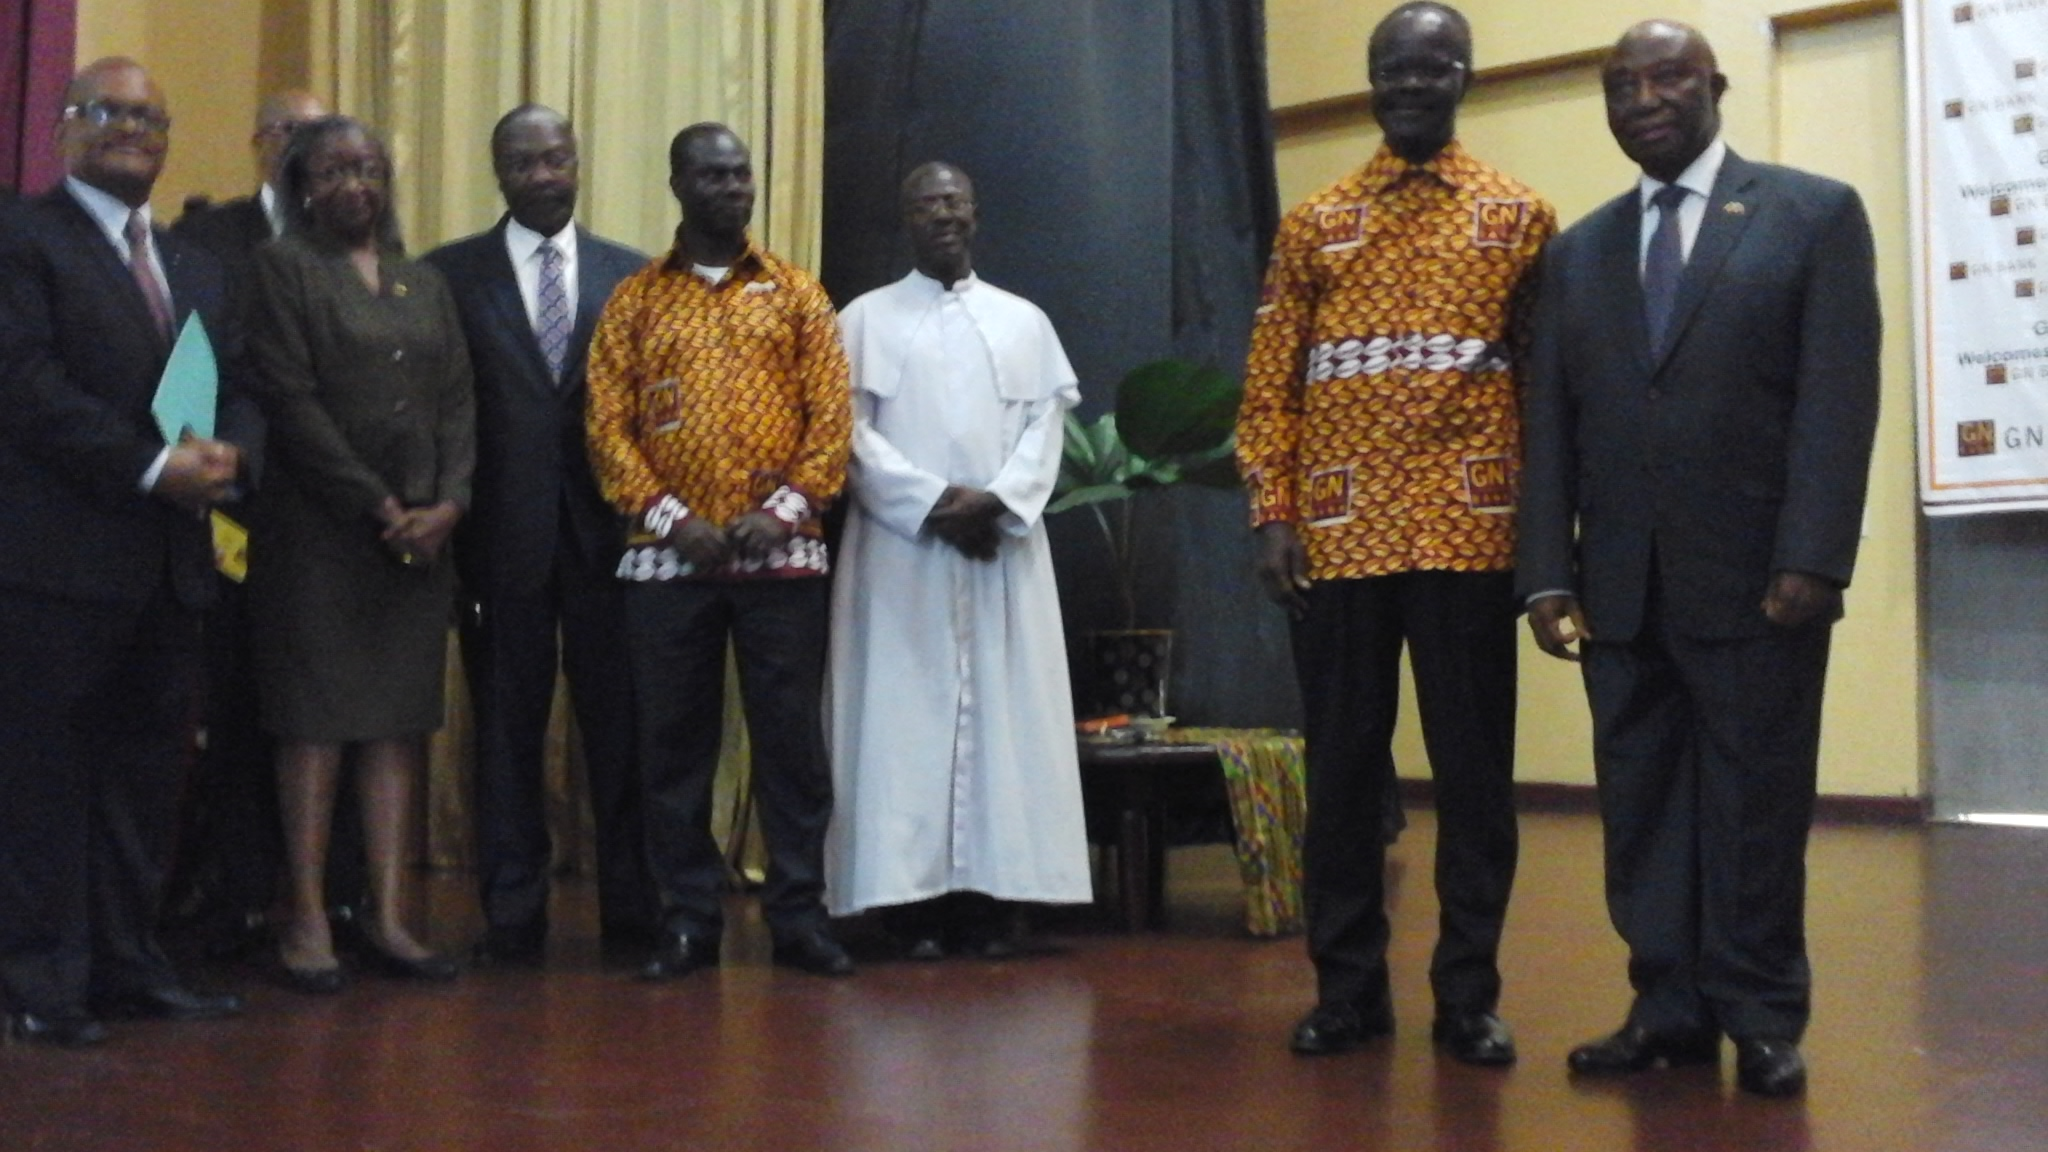 Line-Up Of Officials at the program including VP Boakai and Dr. Nduom